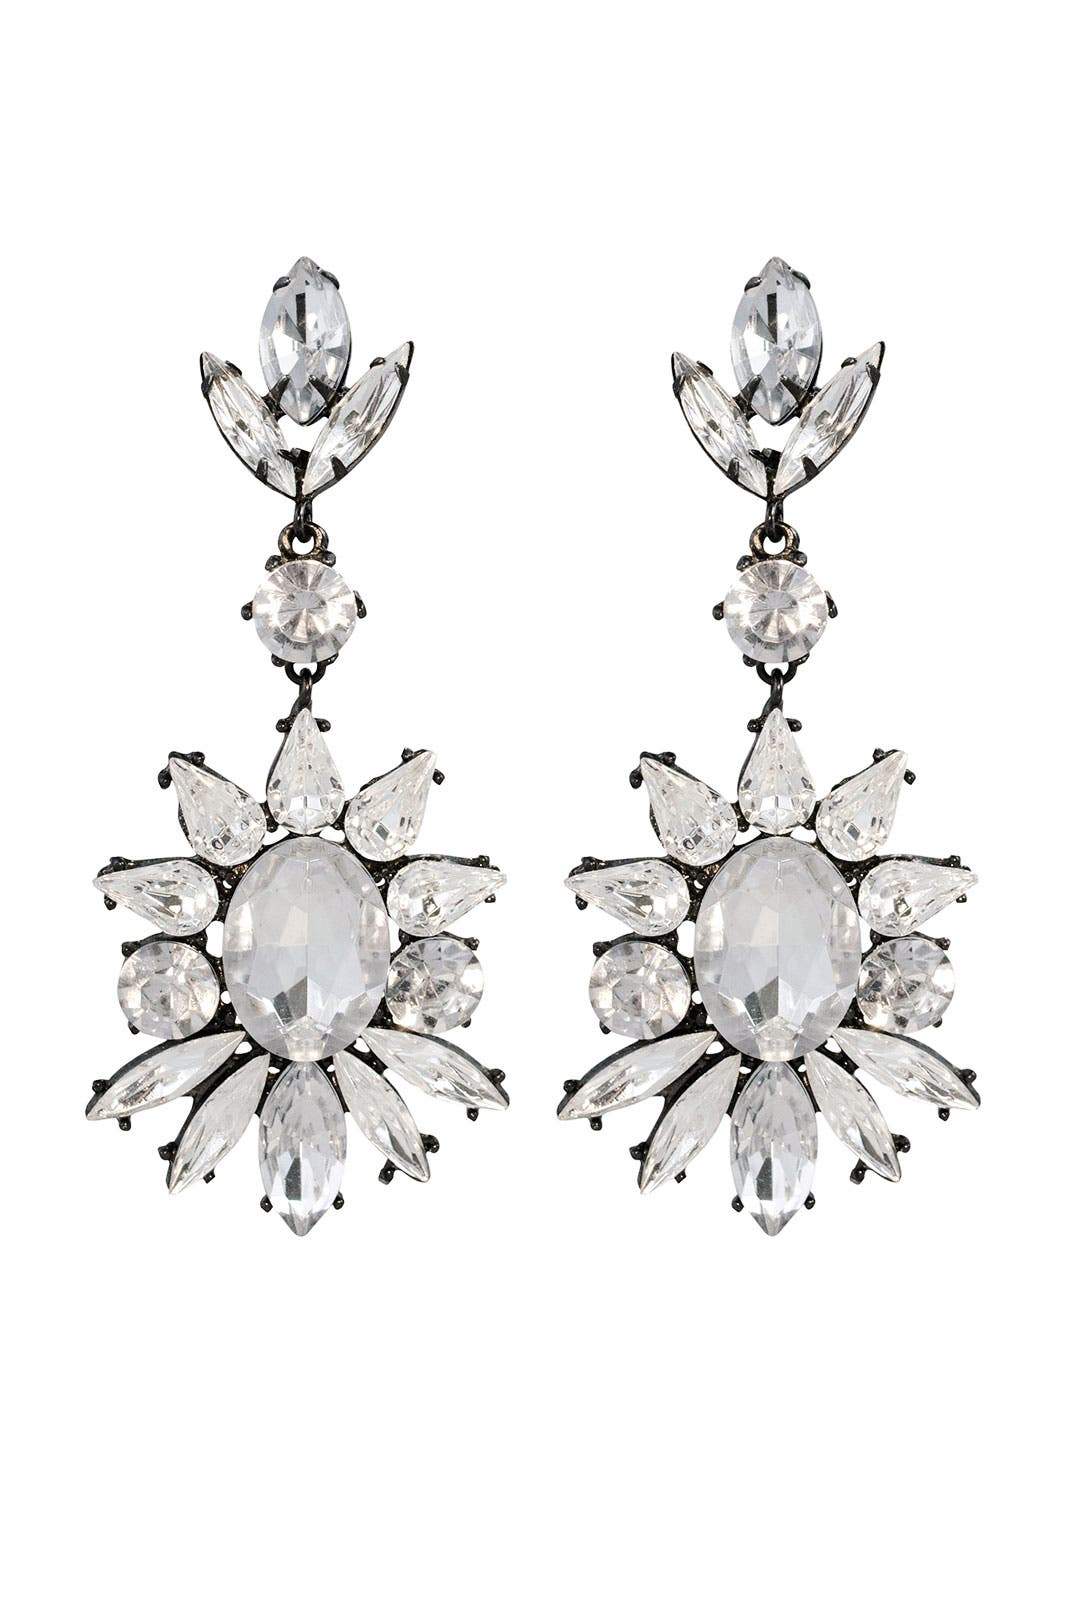 Gunmetal and Roses Earrings by RJ Graziano